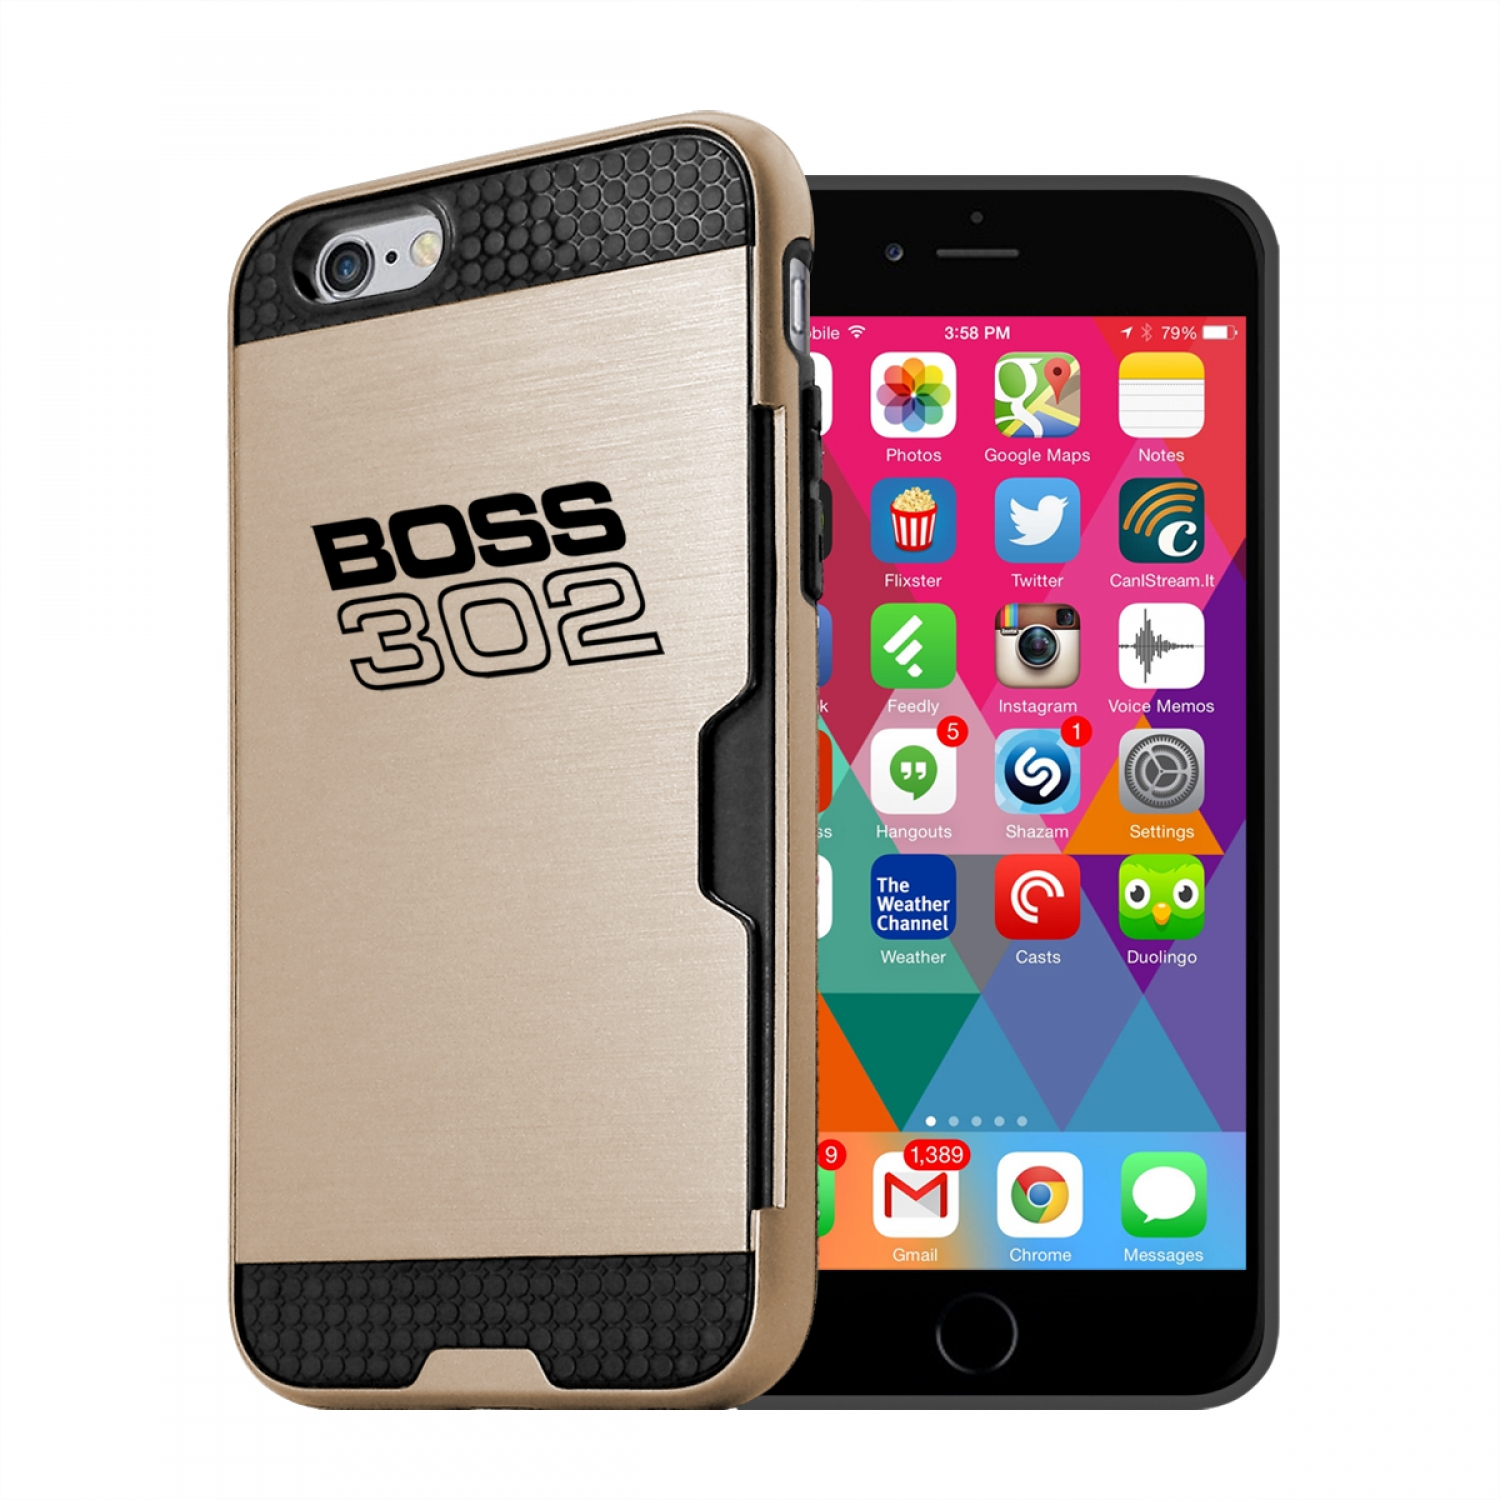 Ford Mustang Boss 302 iPhone 6 6s Ultra Thin TPU Golden Phone Case with Credit Card Slot Wallet